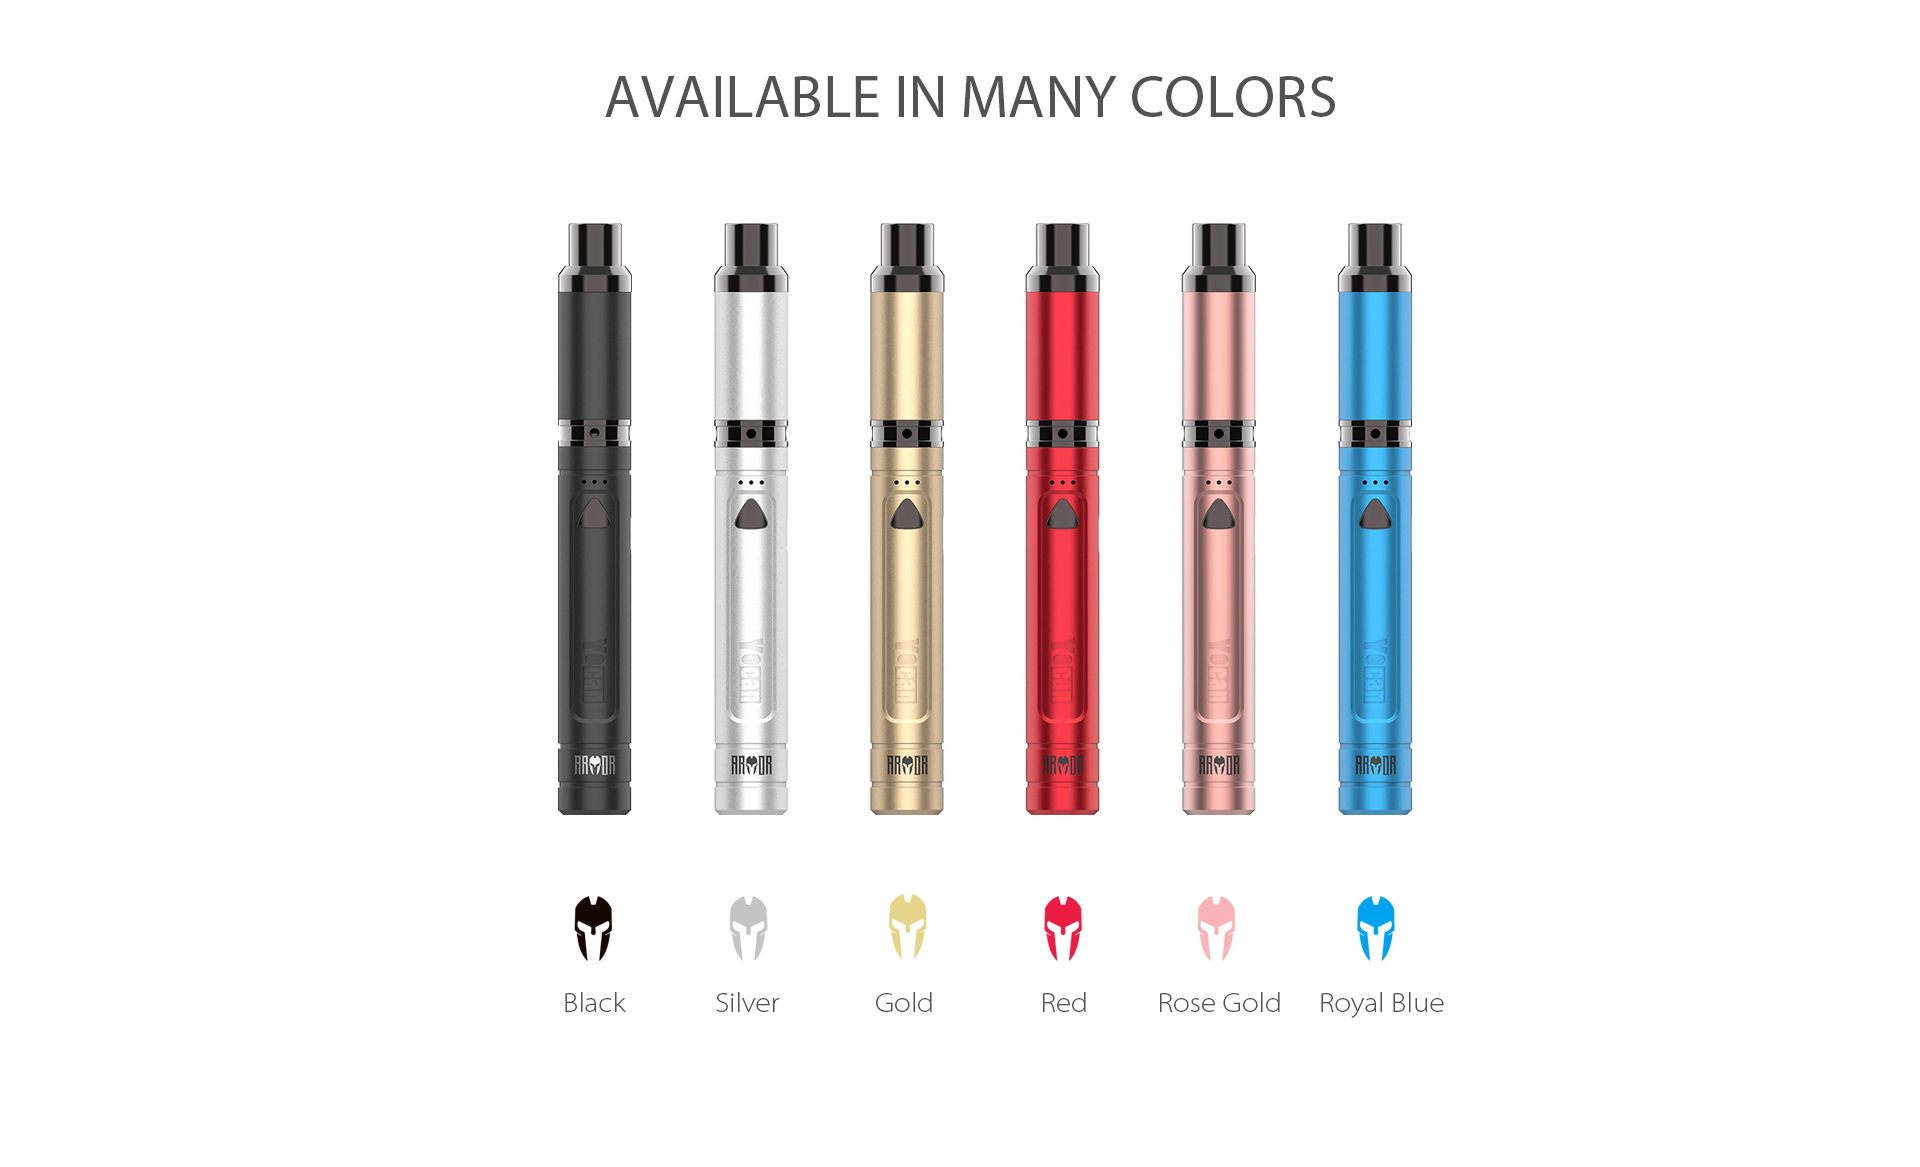 Yocan Armor Vaporizer pen comes with 6 stylish colors.